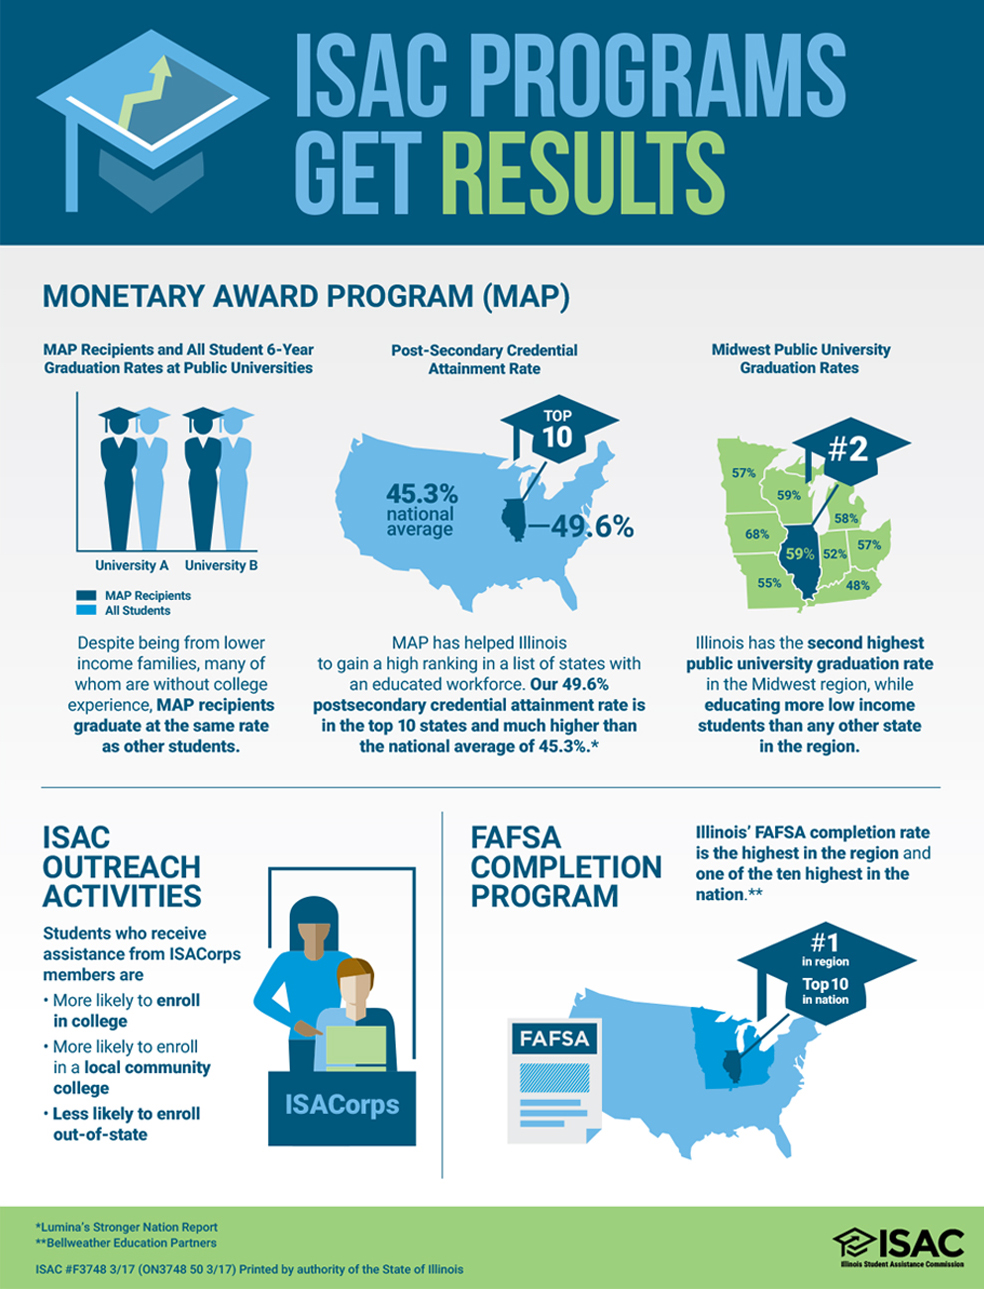 isac_gets_results.jpg